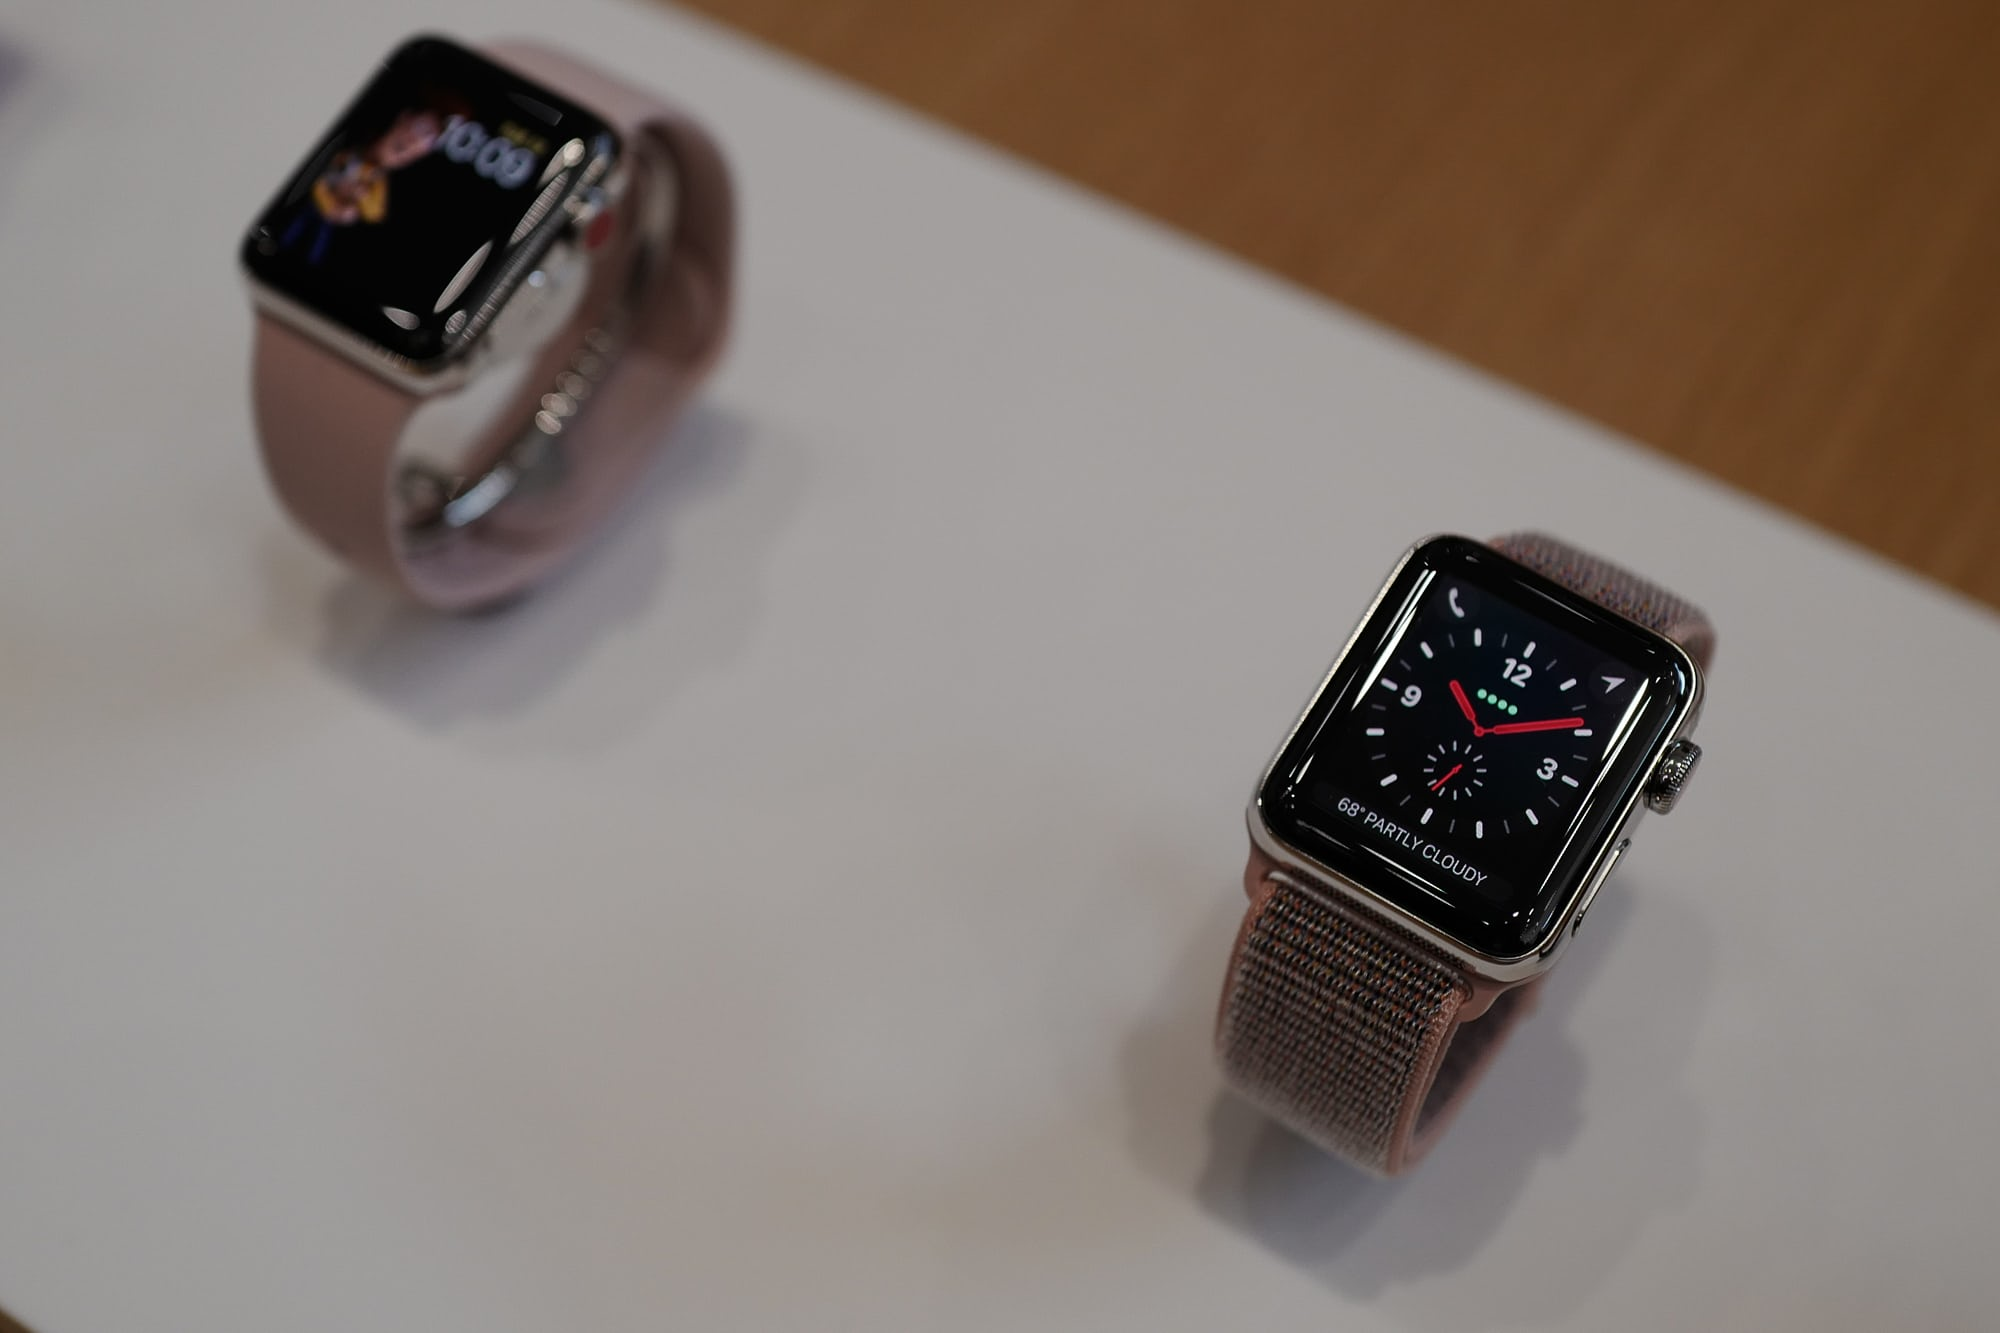 A Week On The Wrist: The Apple Watch Series 3 Edition A Week On The Wrist: The Apple Watch Series 3 Edition L1070273